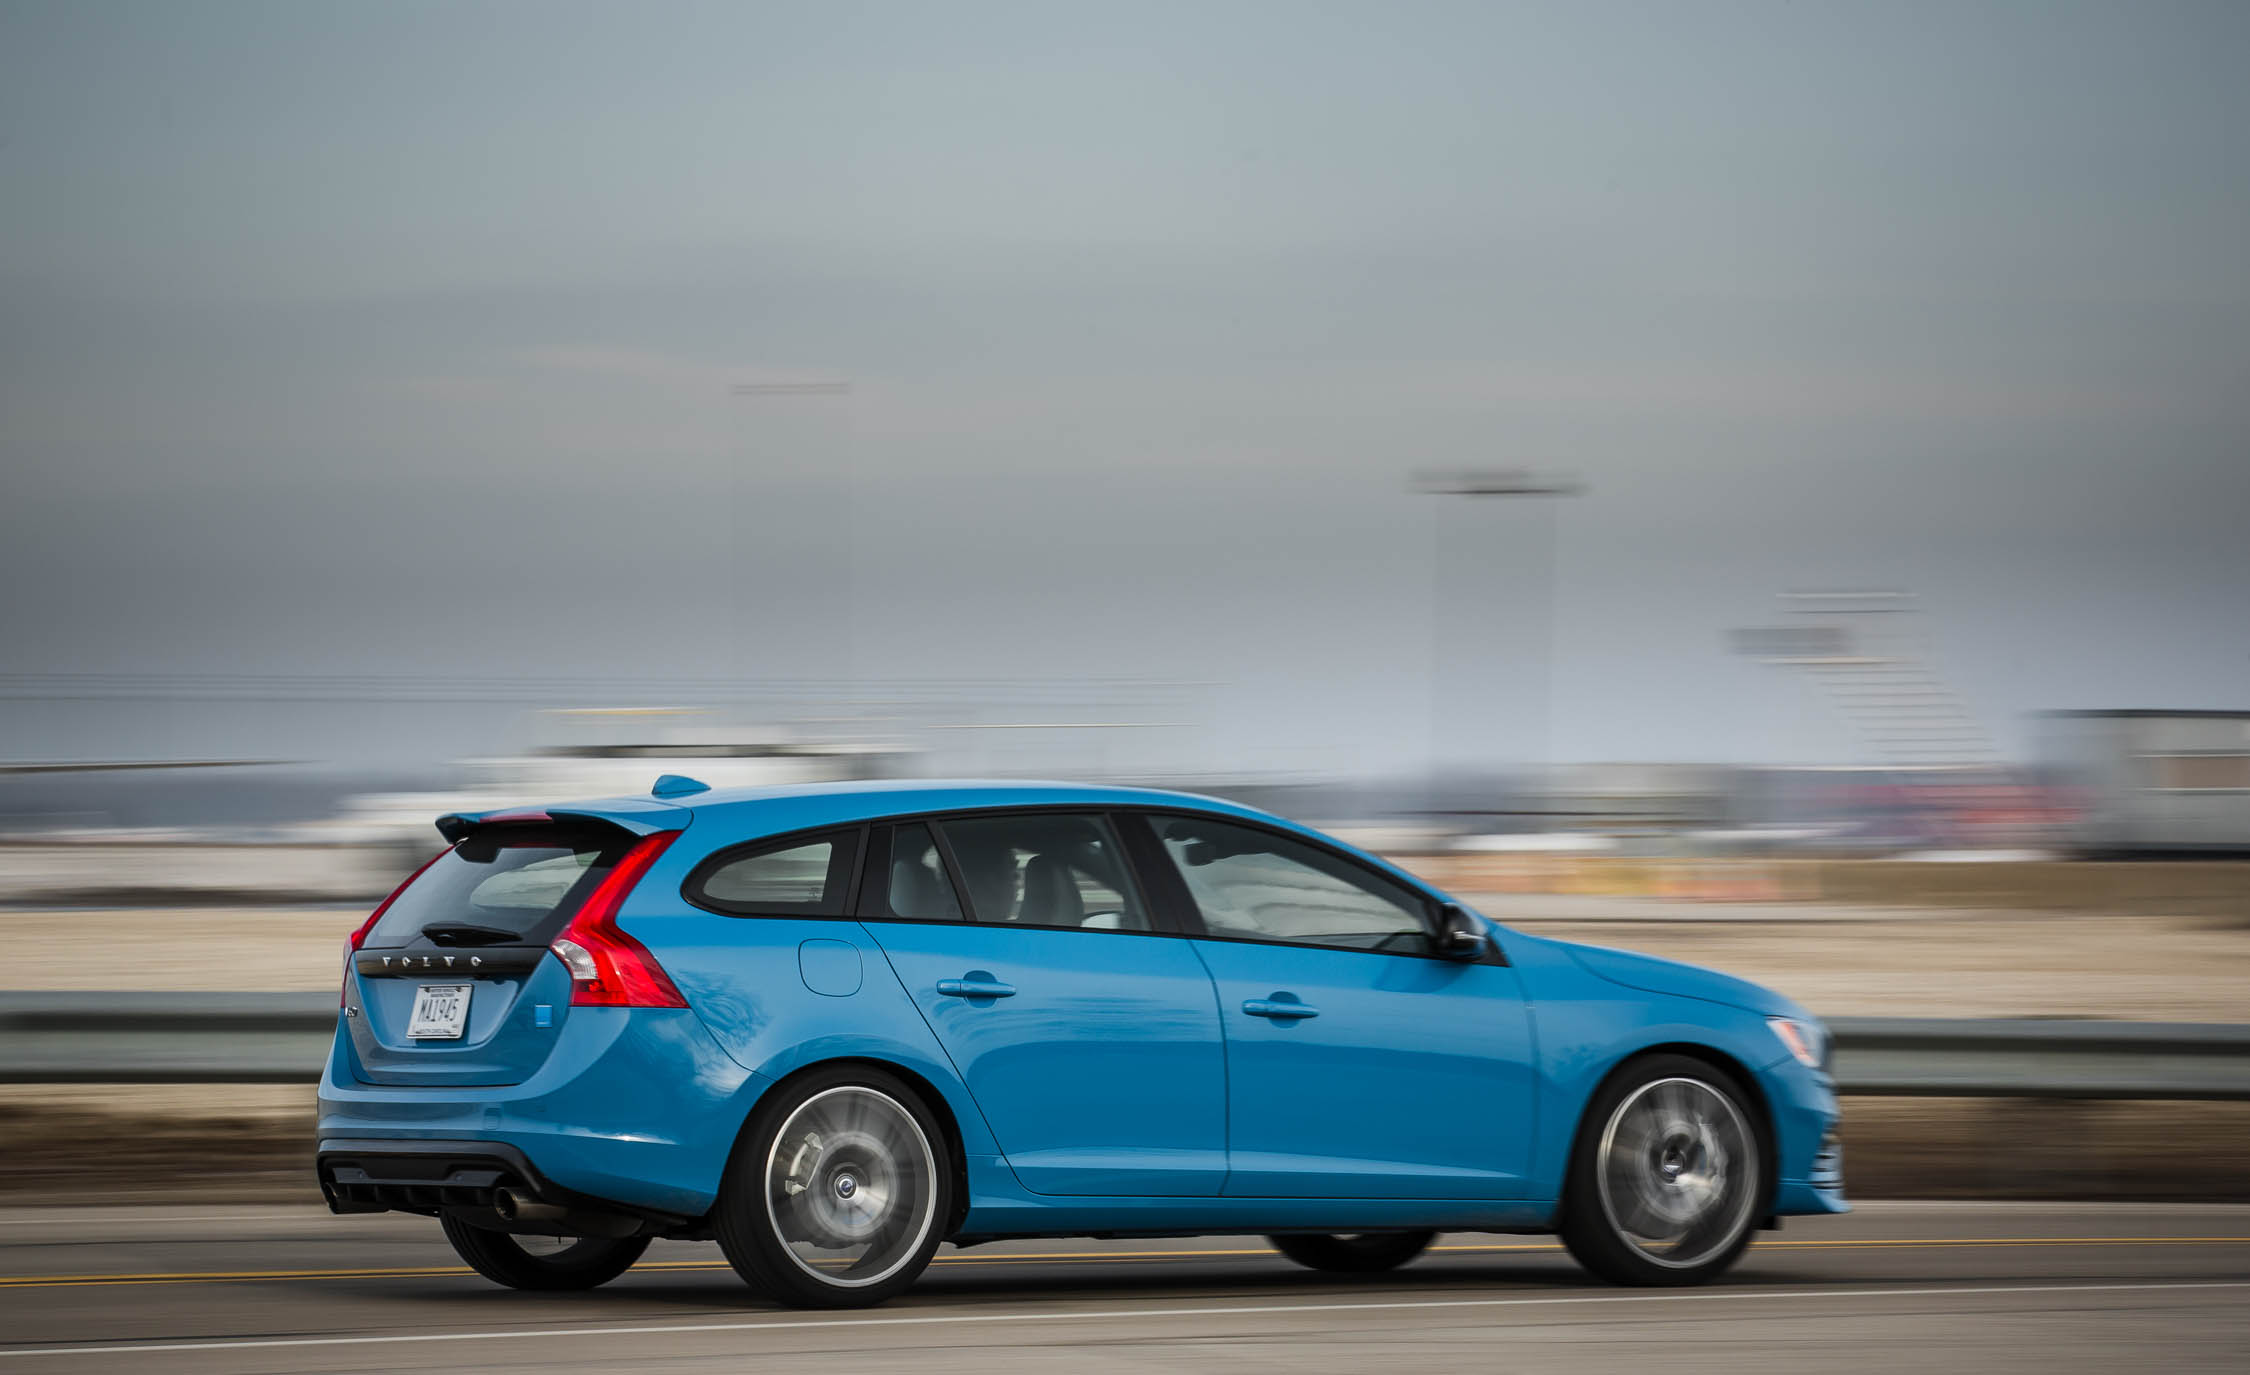 2017 Volvo V60 Polestar Test Drive Rear And Side View (View 3 of 53)